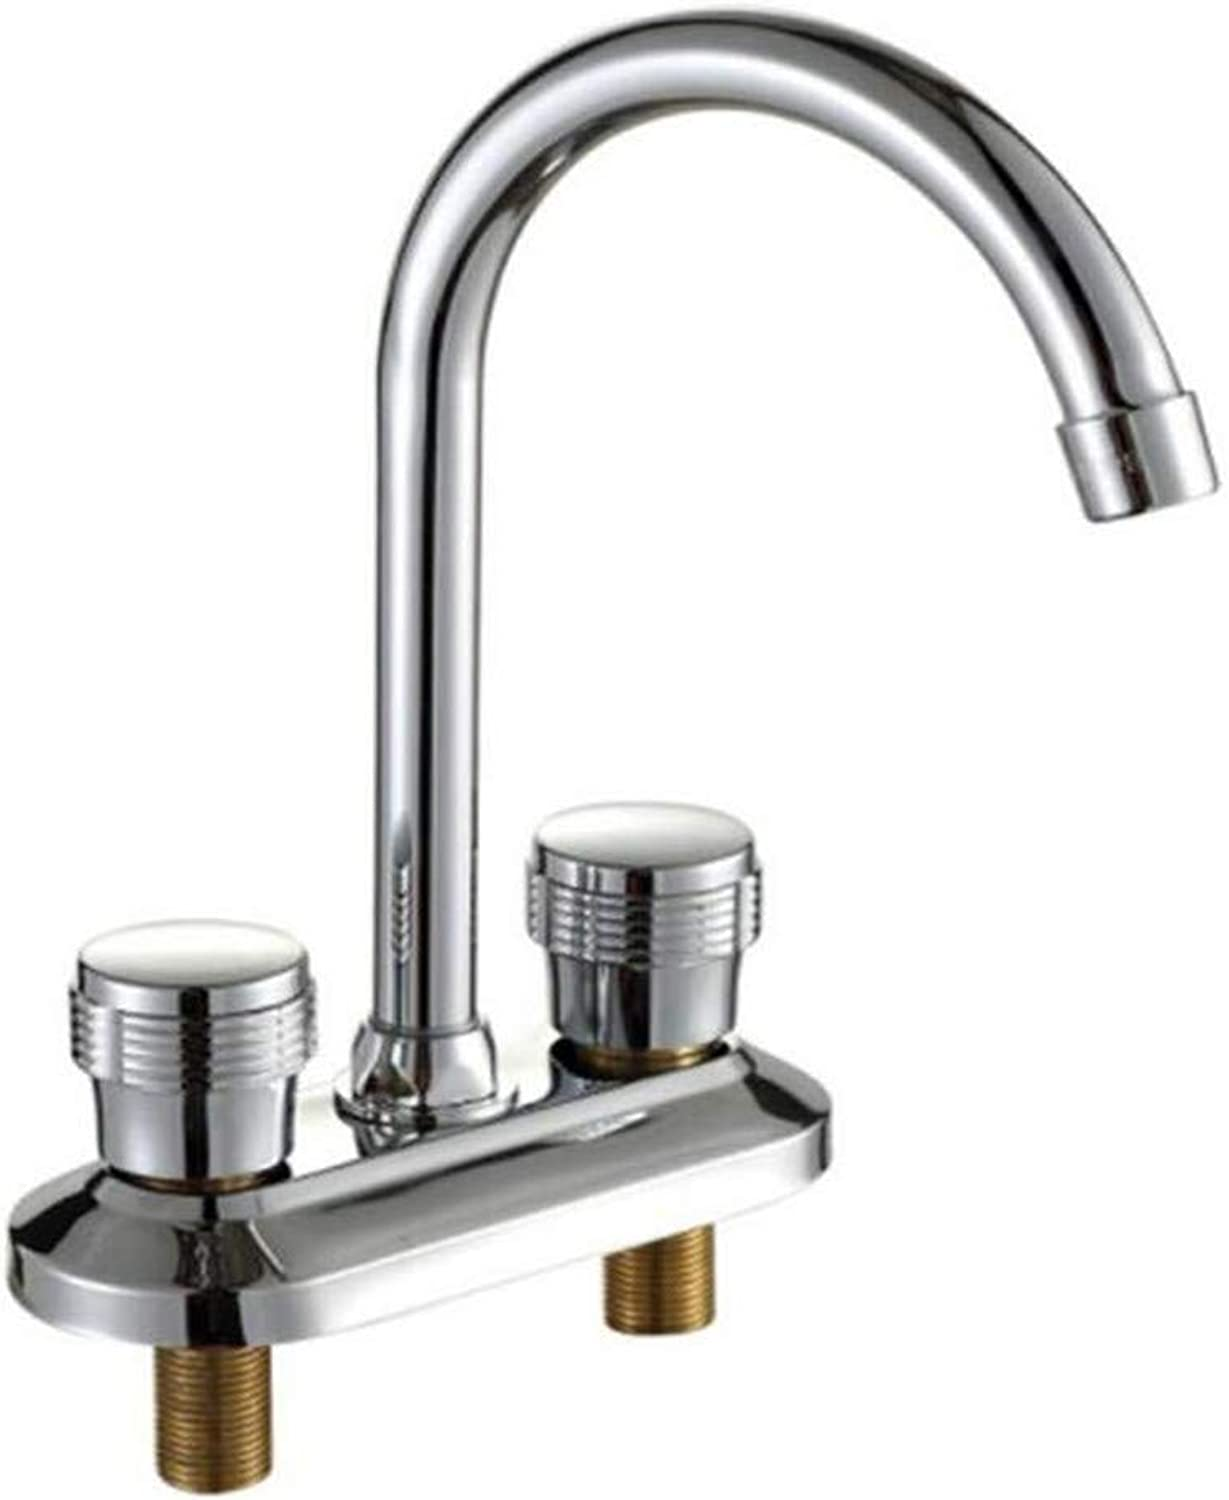 Vintage Chrome Brass Kitchen Bathroom Taps Double-Hole Washbasin Cold and Hot Water Faucet Bathroom Counter Basin Faucet